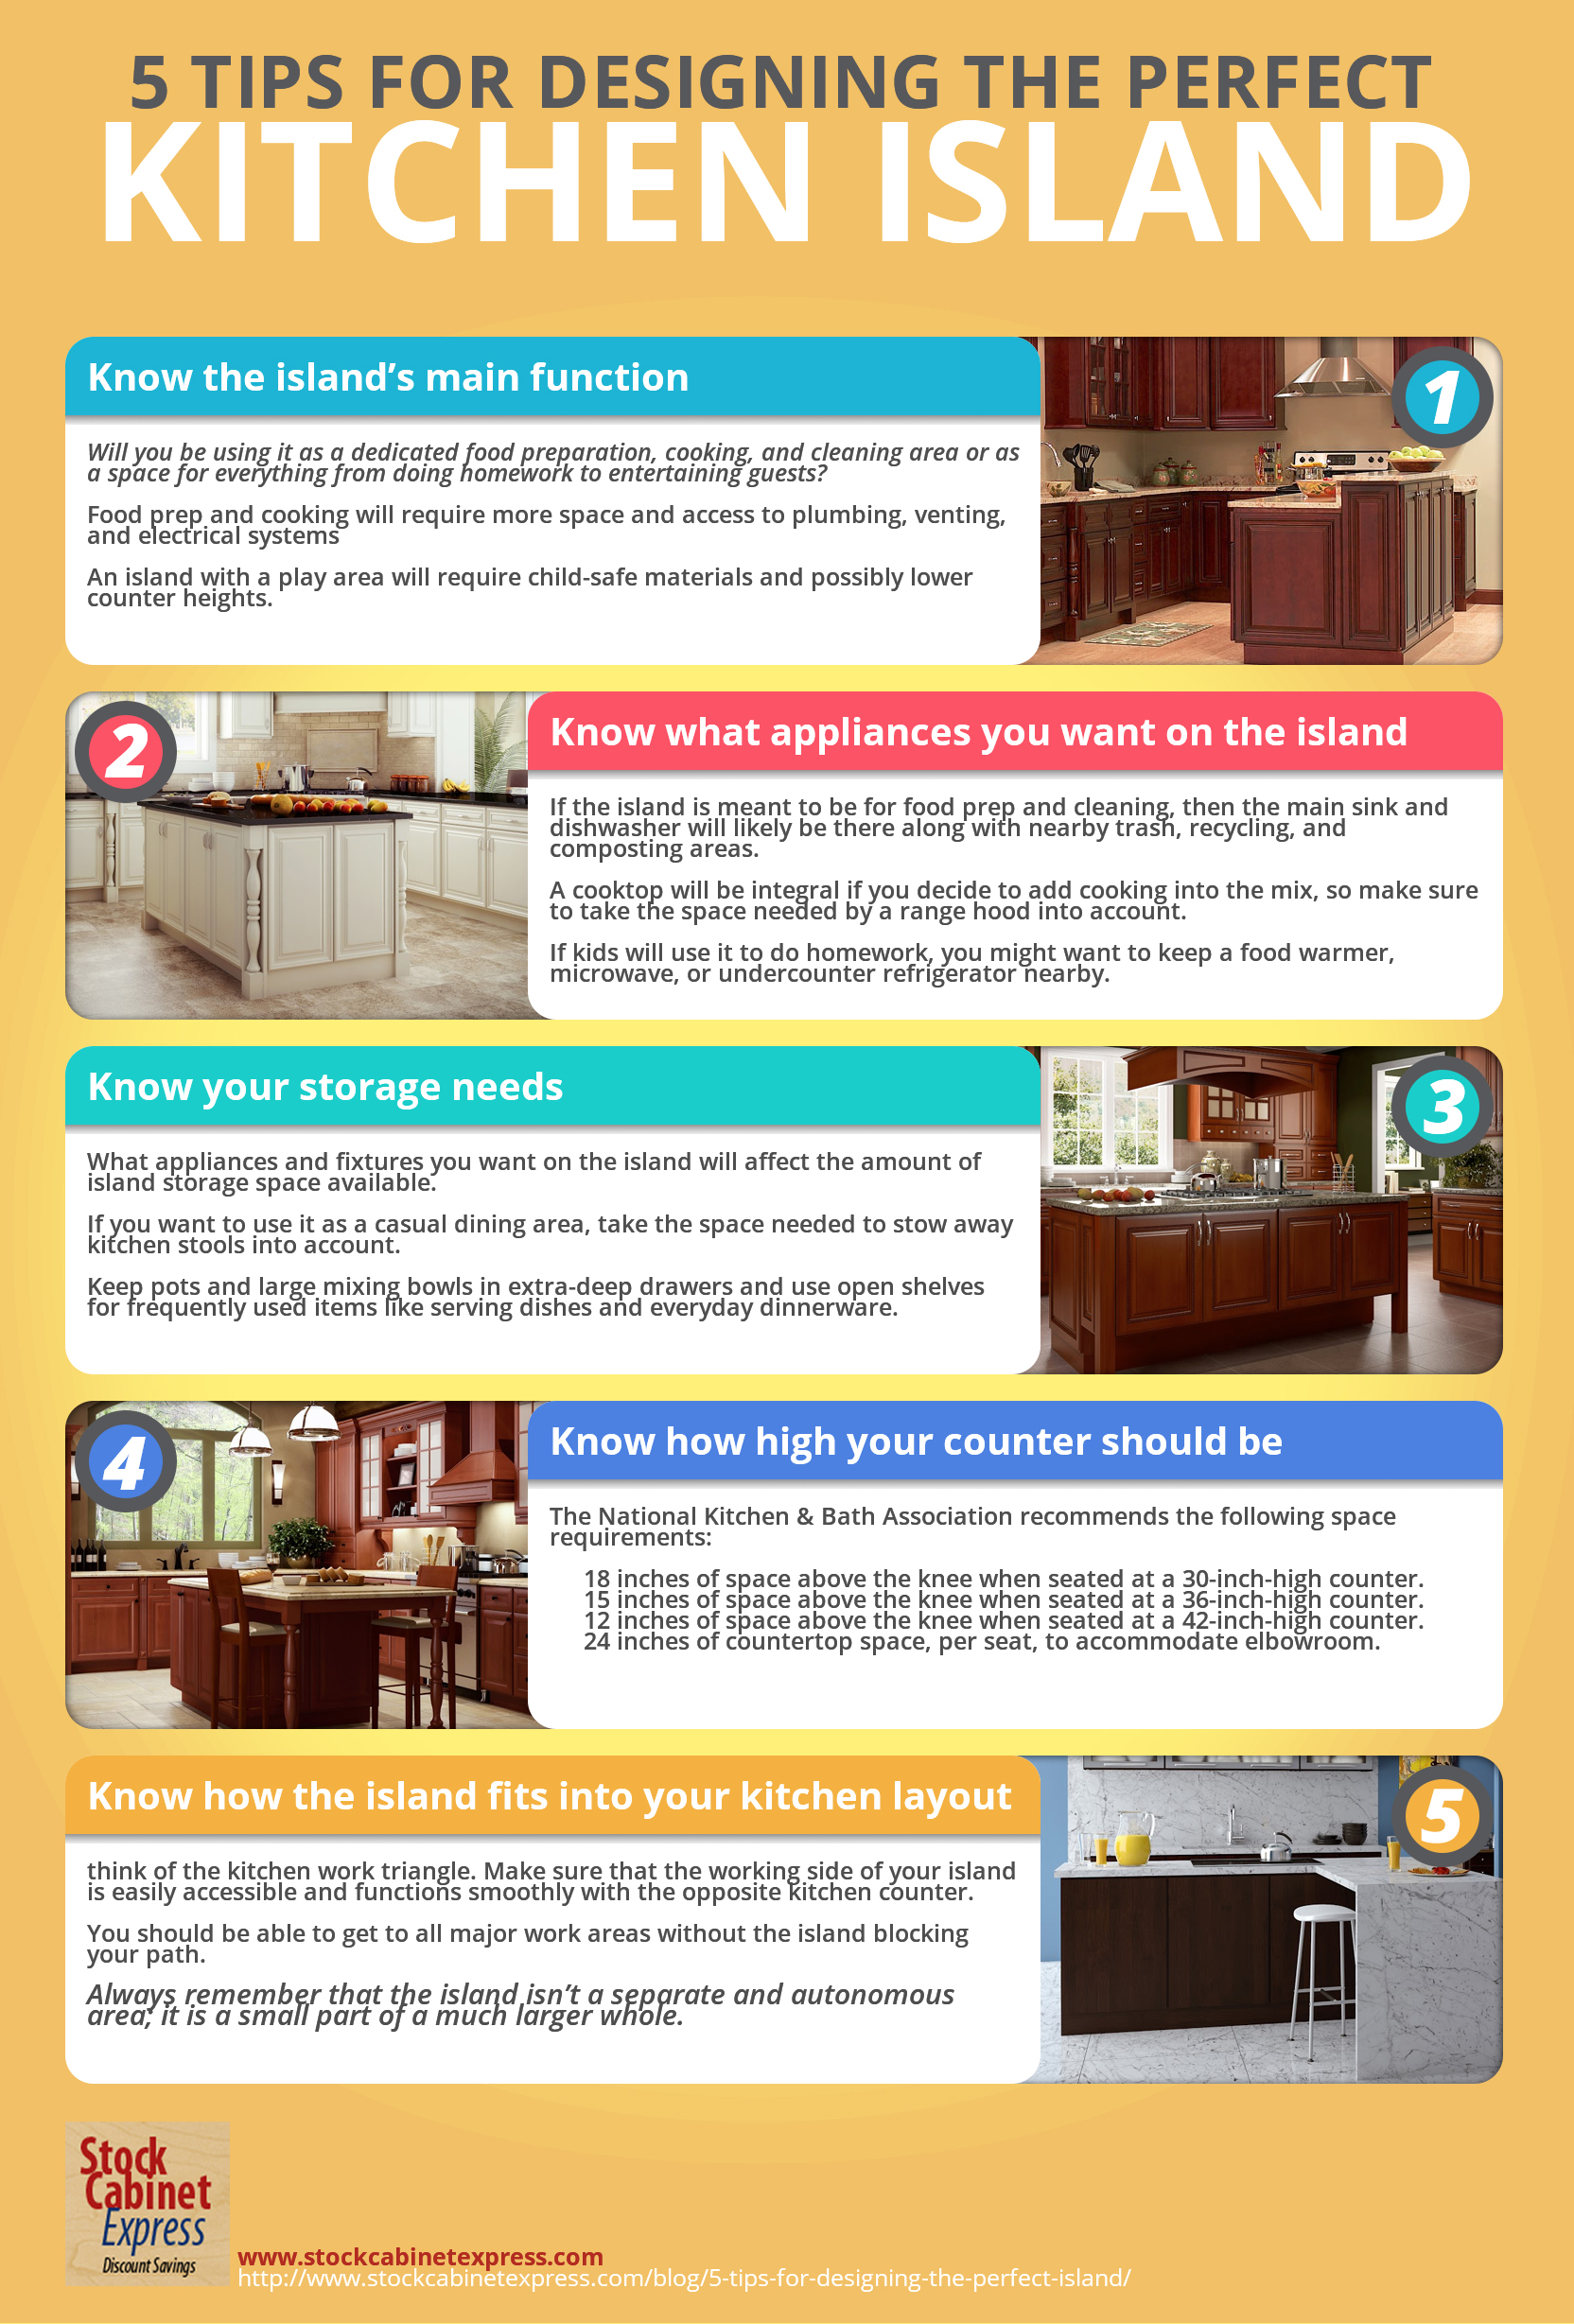 5 Tips for Designing the Perfect Island | Counter Top Kitchen Design Inch on kitchen countertop edge designs, kitchen pass through designs, kitchen floor tile designs, kitchen range hood designs, kitchen backsplash designs, kitchen sink designs,